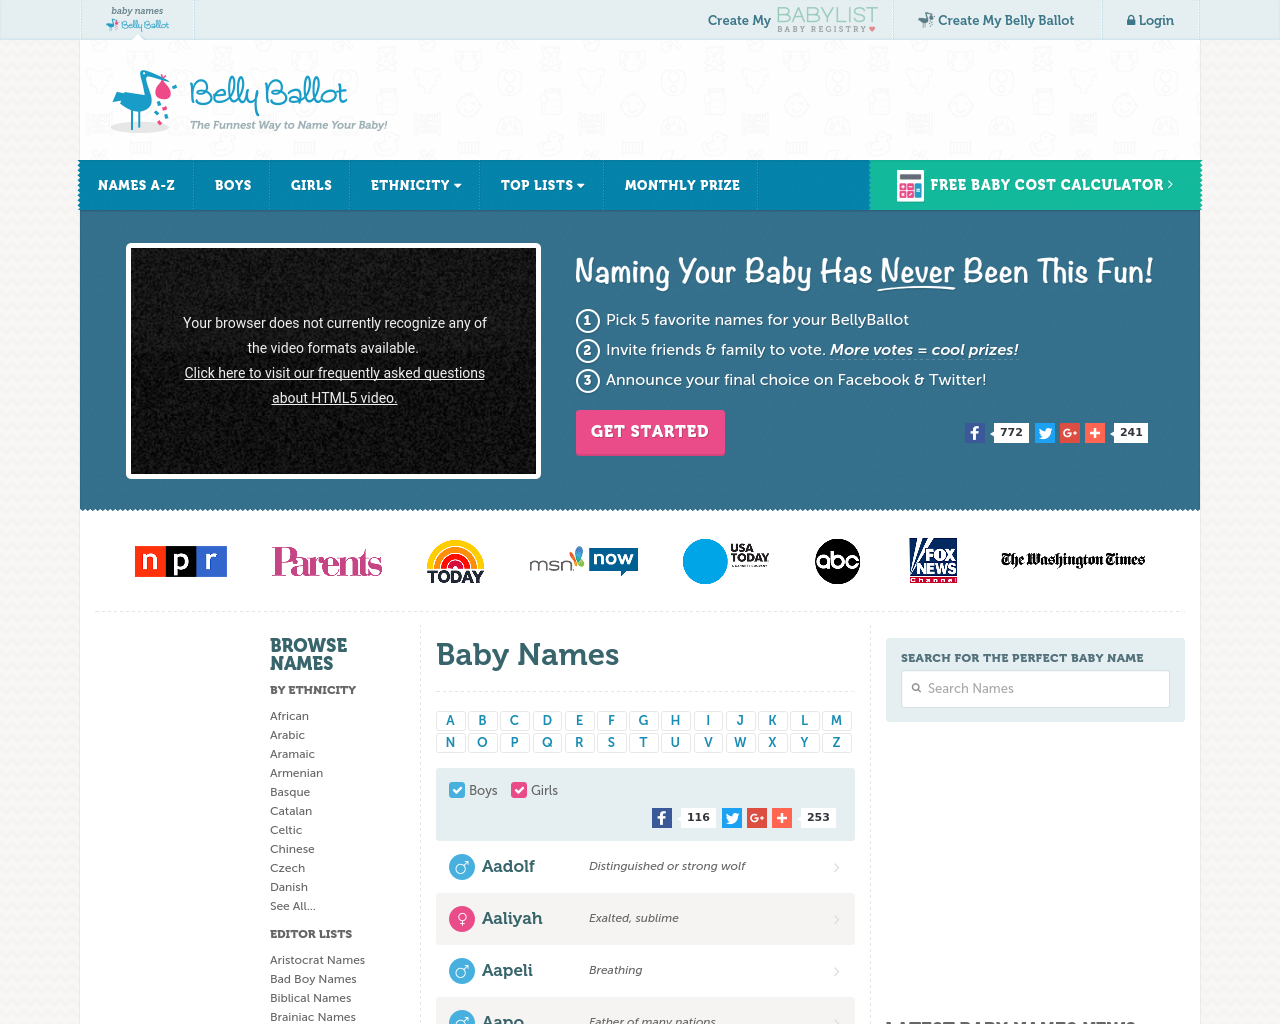 BellyBallot-Advertising-Reviews-Pricing